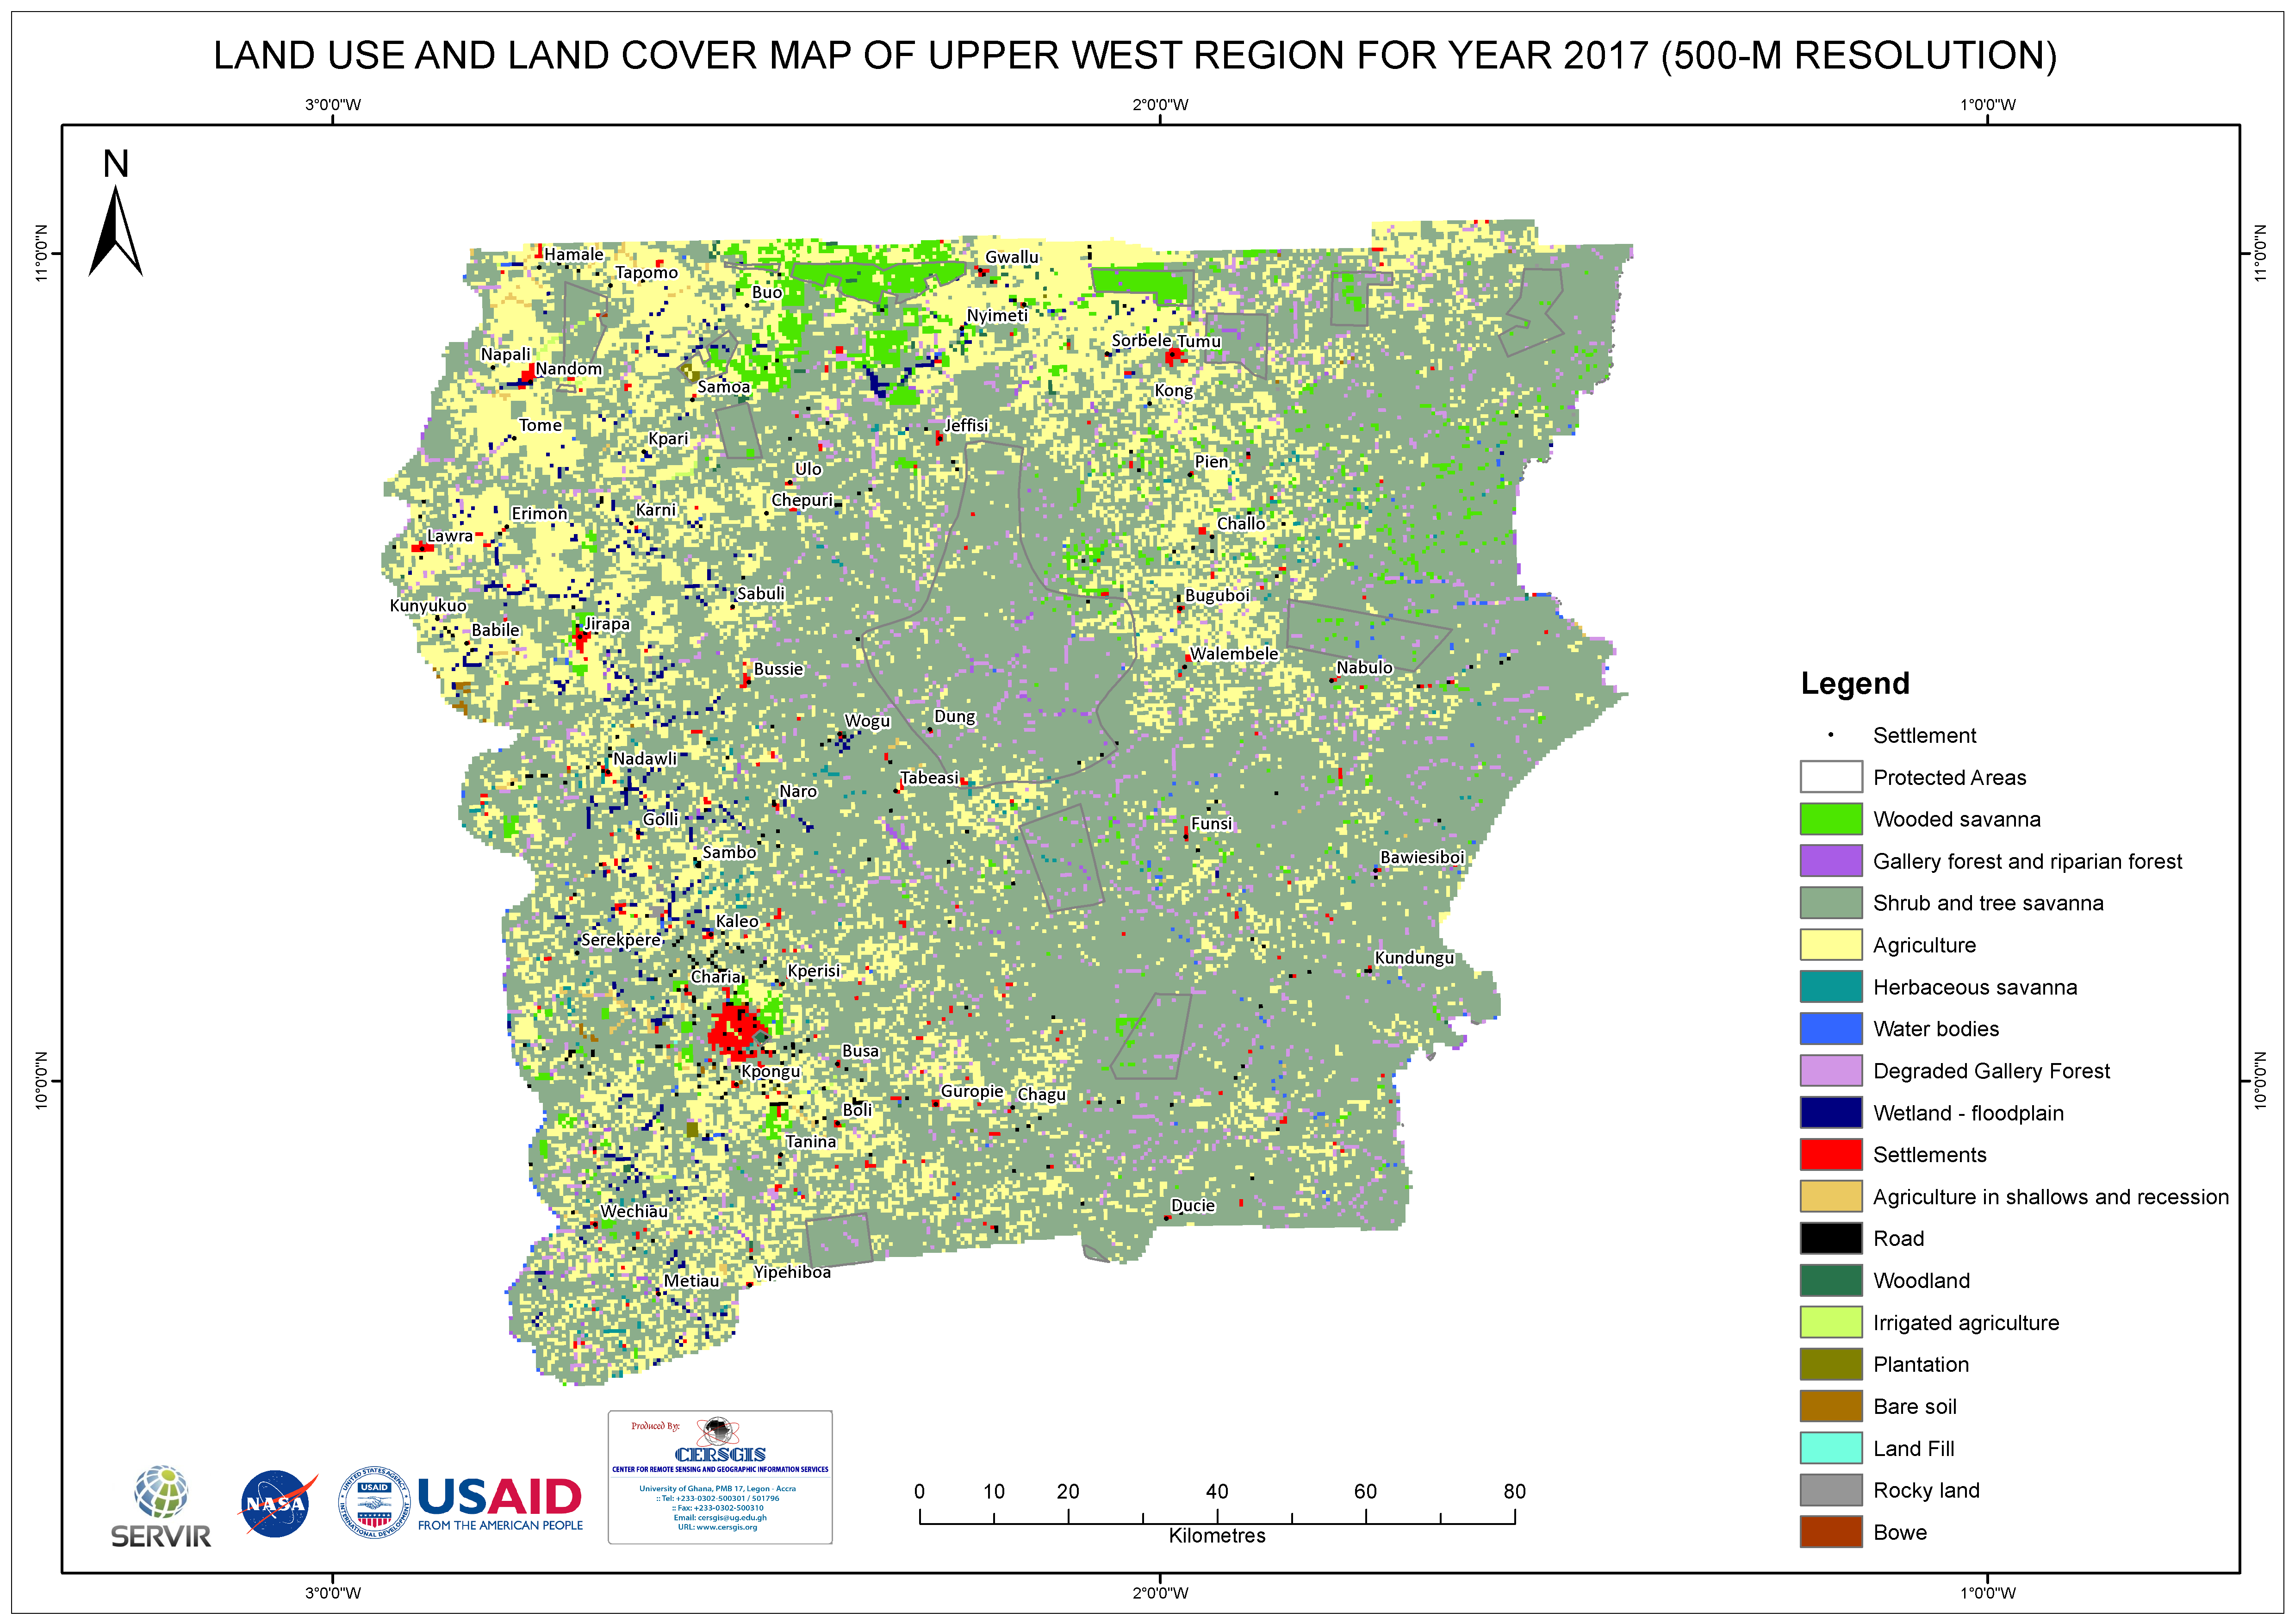 Land Cover Map for Upper West Region